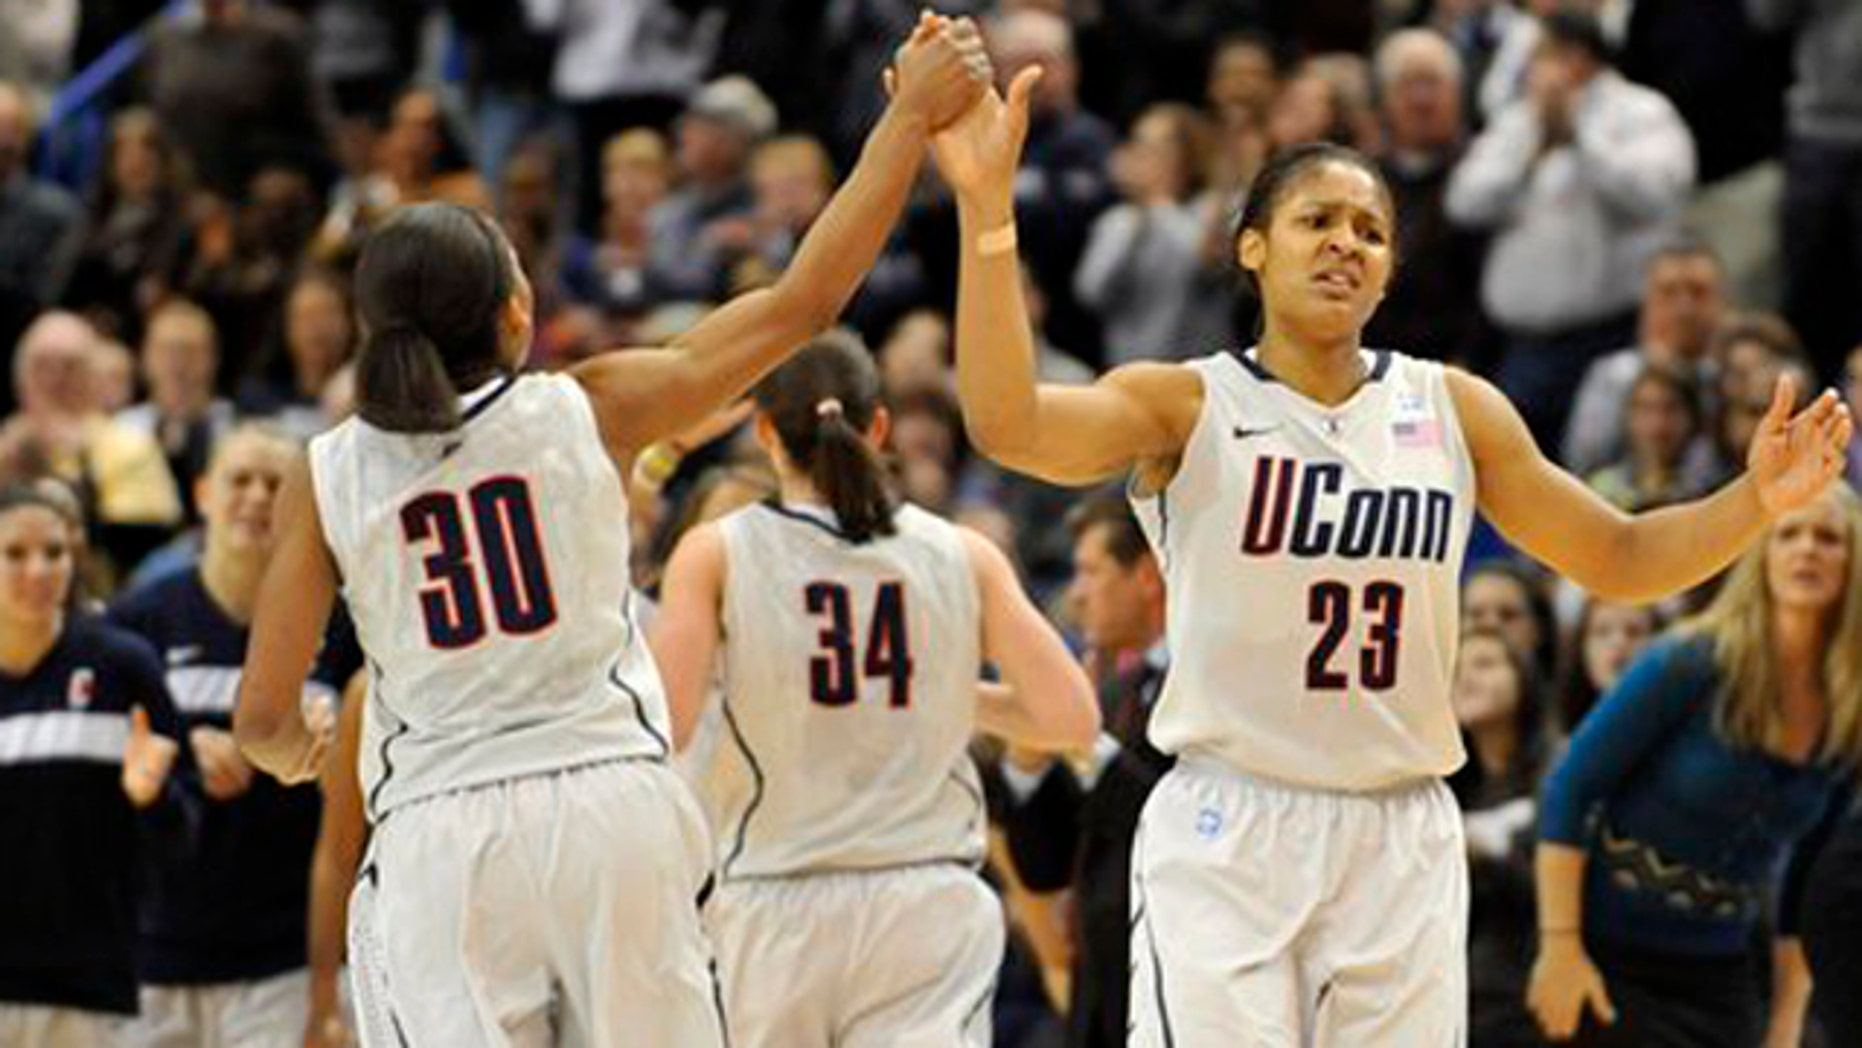 Dec. 5, 2010: Connecticut's Maya Moore, right, high-fives teammate Lorin Dixon after breaking UConn's all time scoring record.